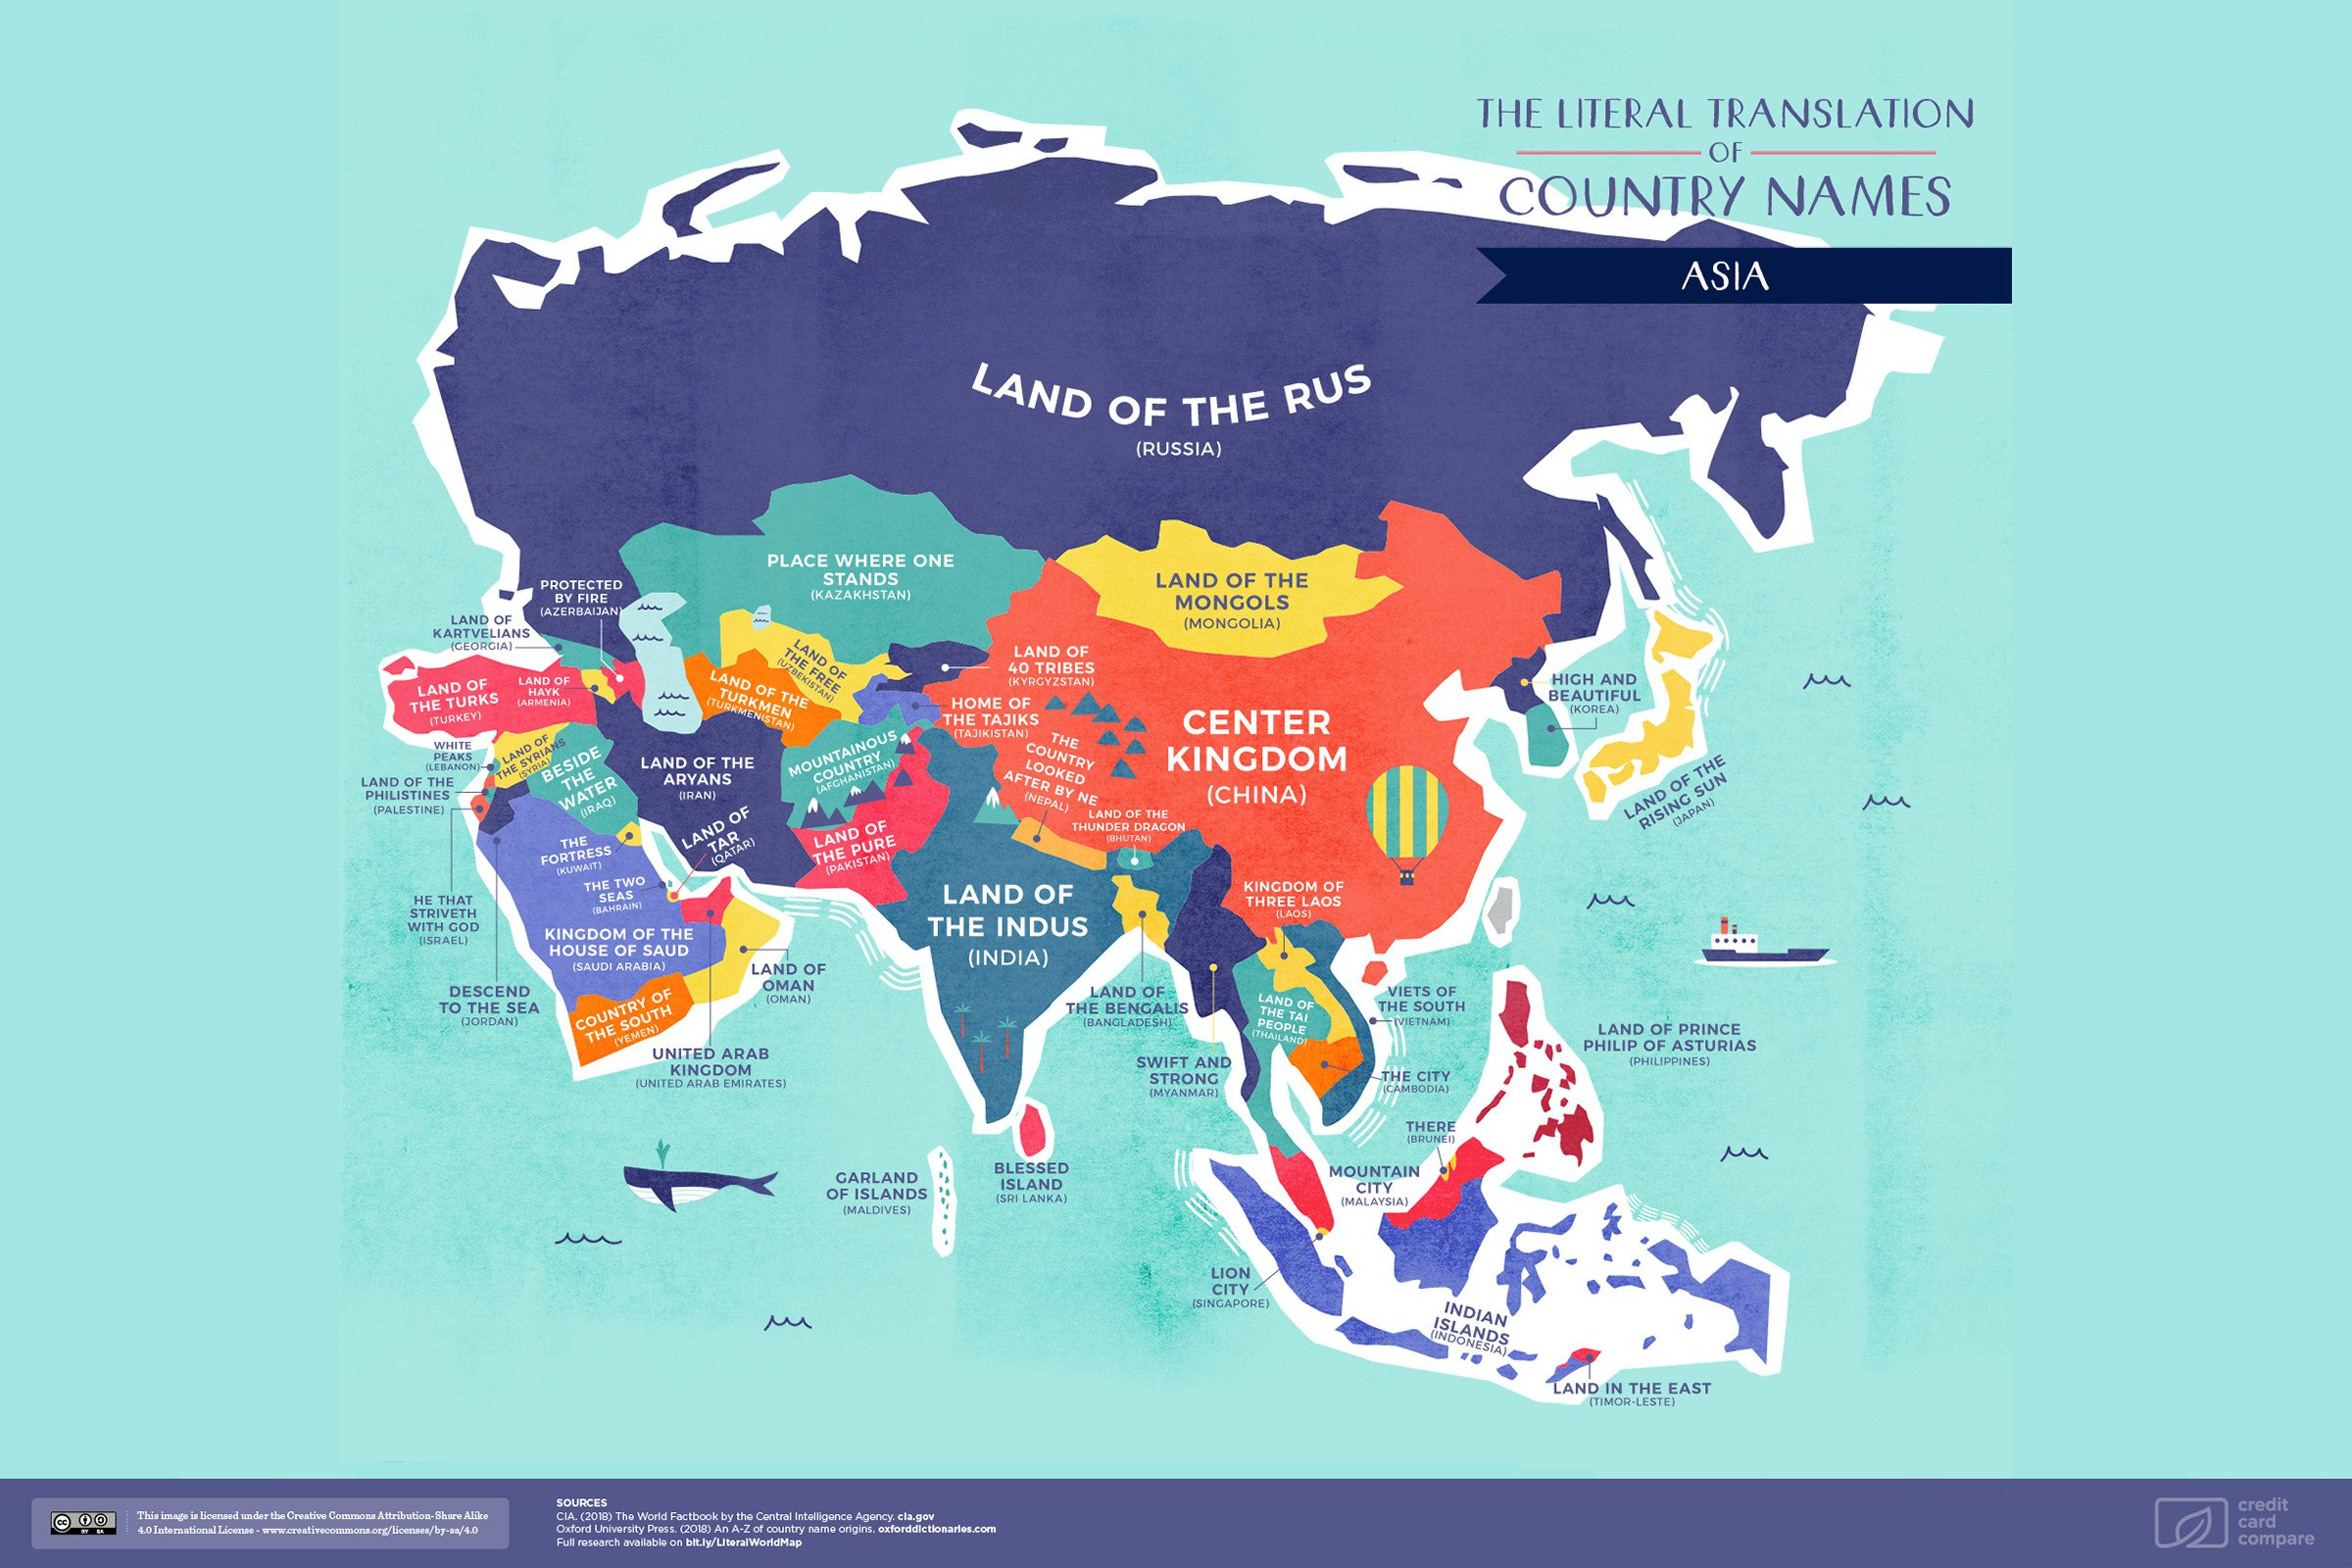 04_Literal-Translation-Of-Country-Names_Asia.or.original